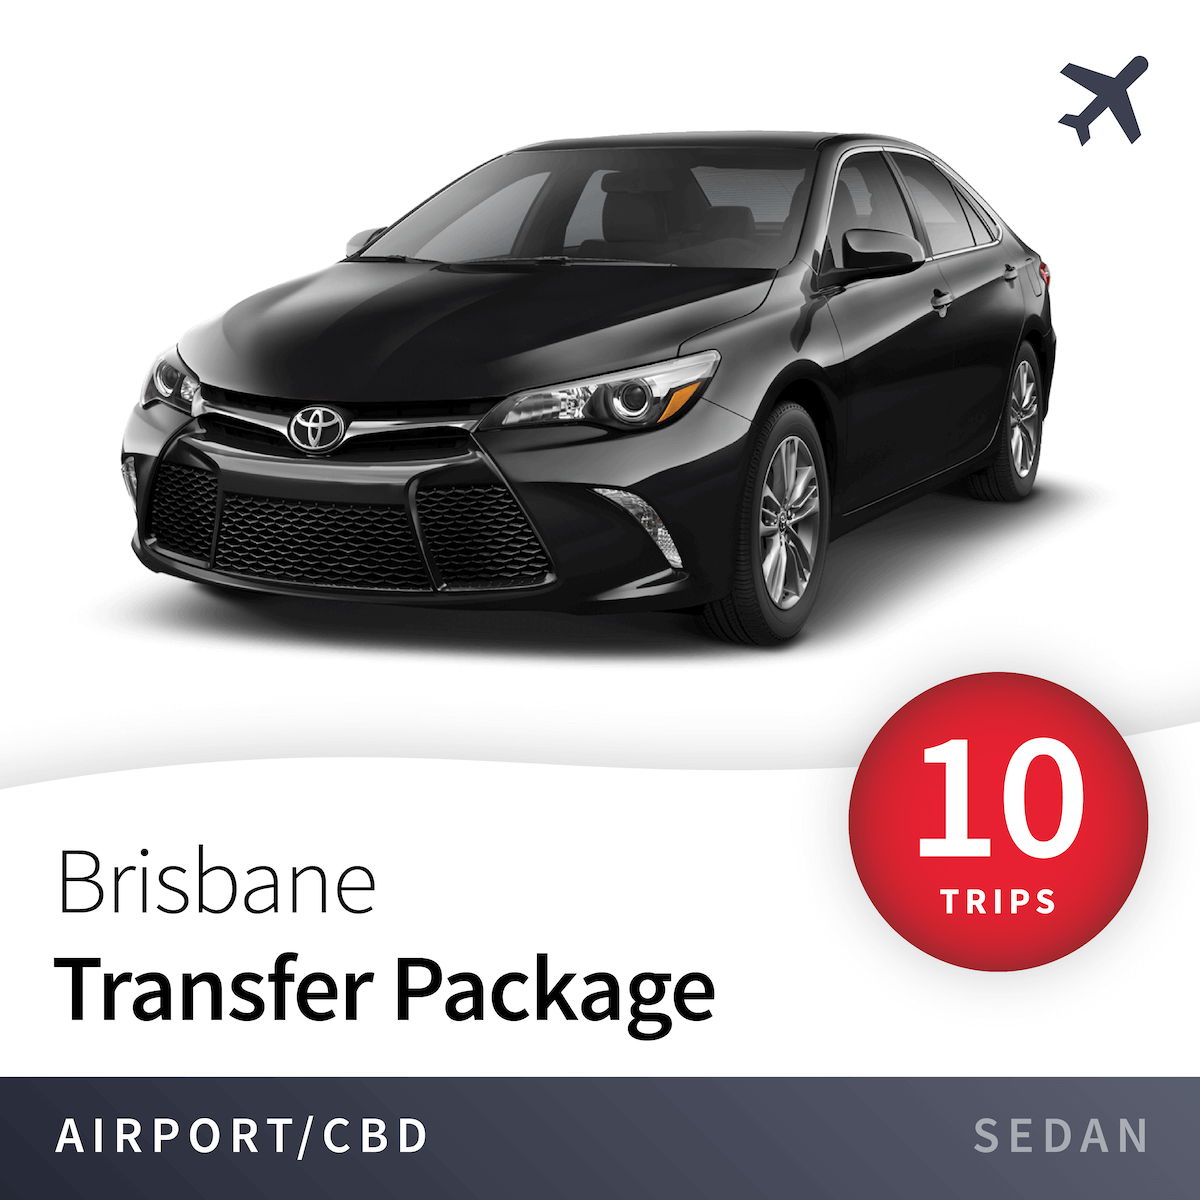 Brisbane Airport Transfer Package - Sedan (10 Trips) 7